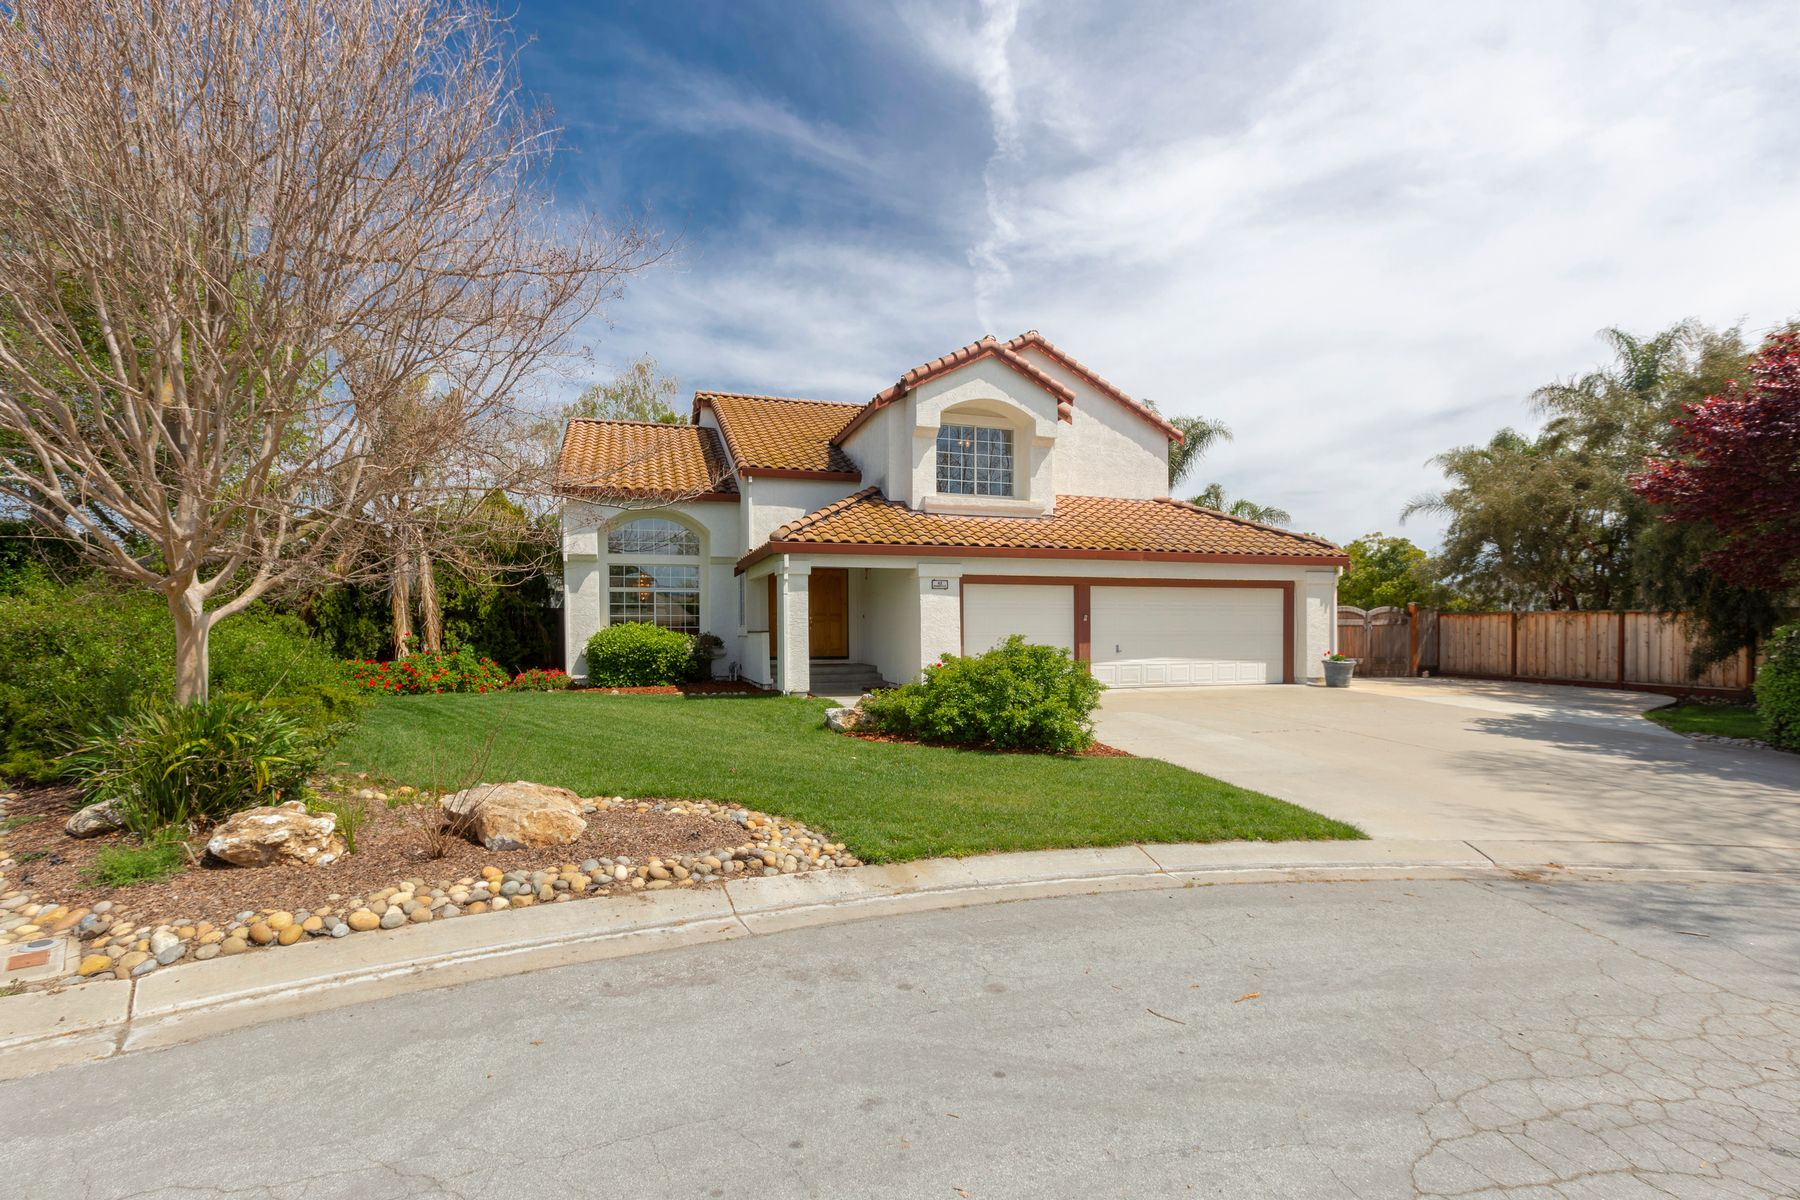 Single Family Homes for Sale at Golf Community in Sunny Hollister 42 Maries Ct. Hollister, California 95023 United States